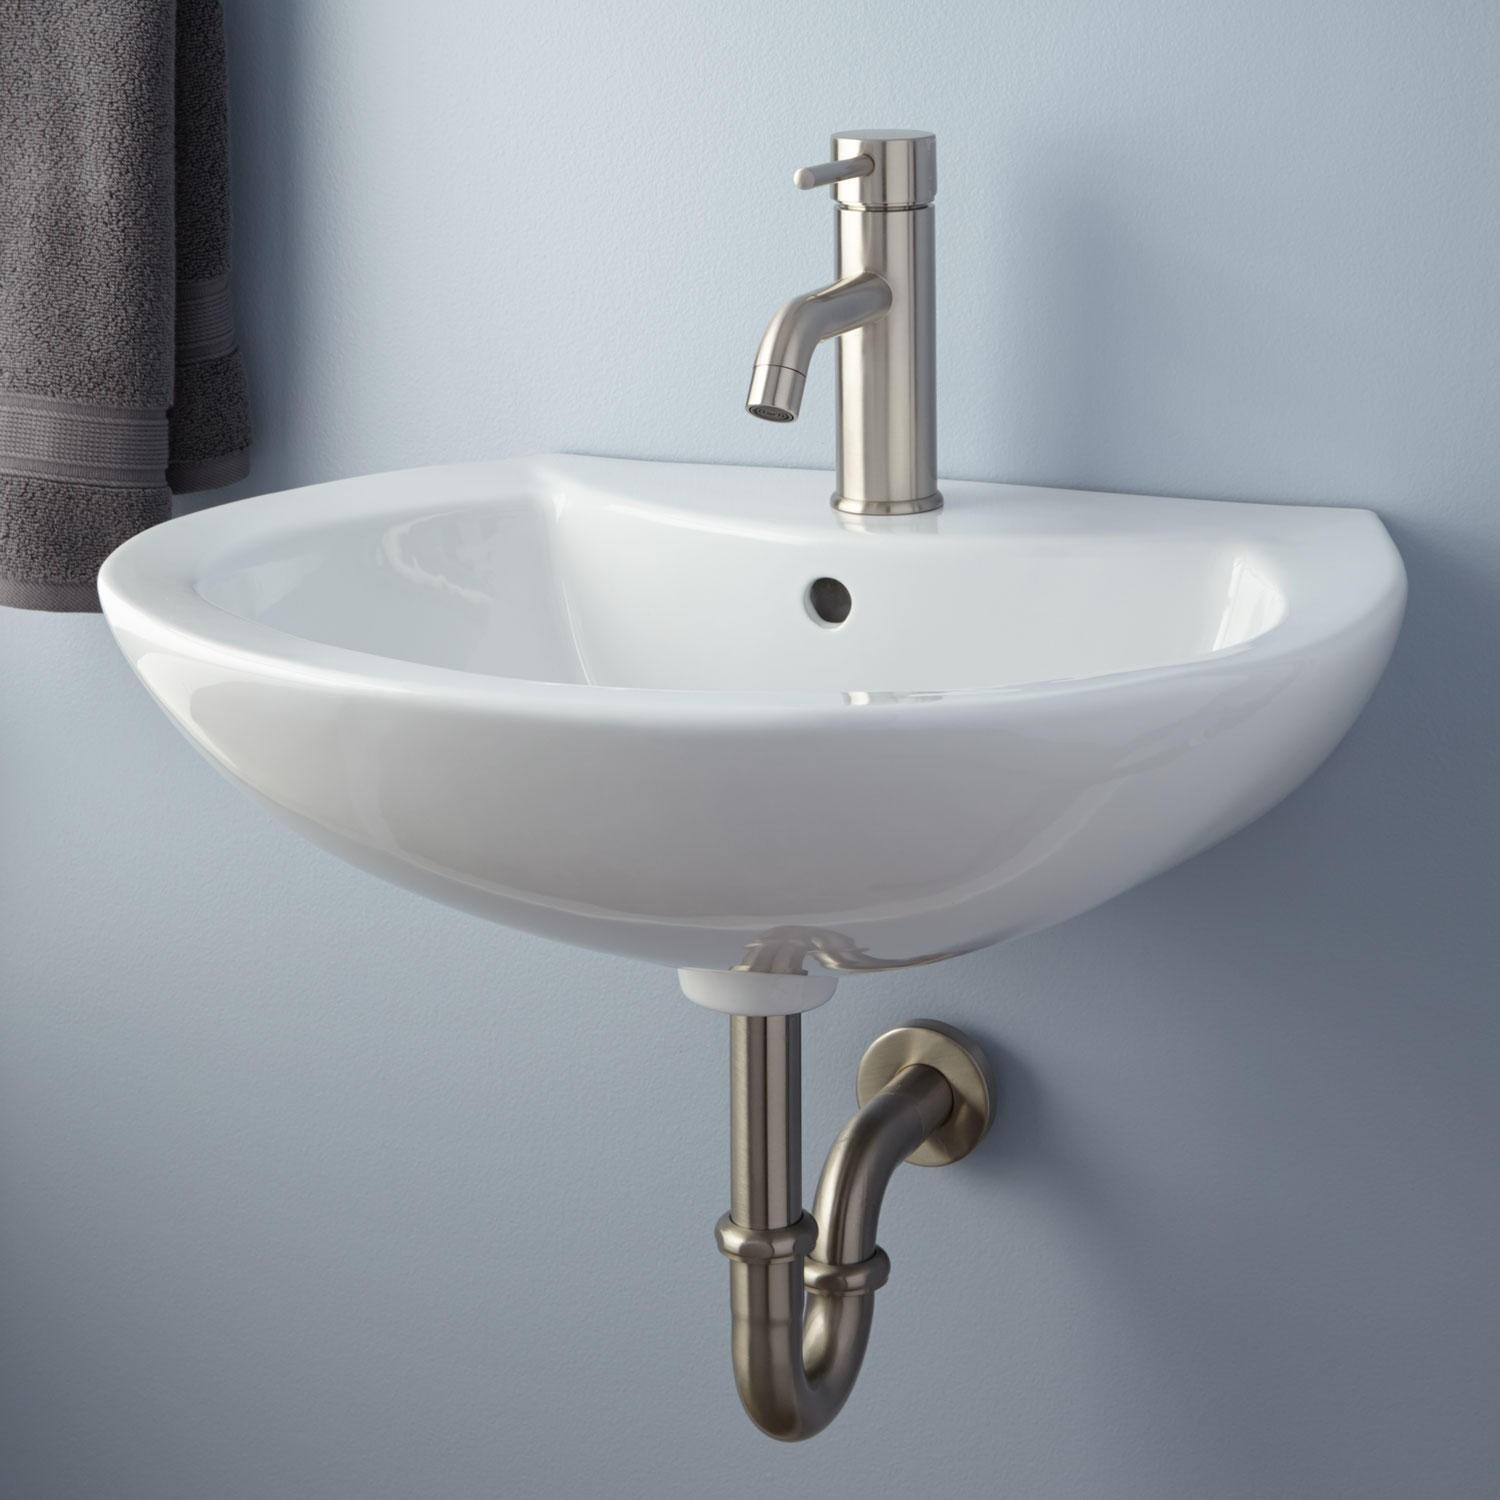 Maisie Porcelain Wall Mount Bathroom Sink